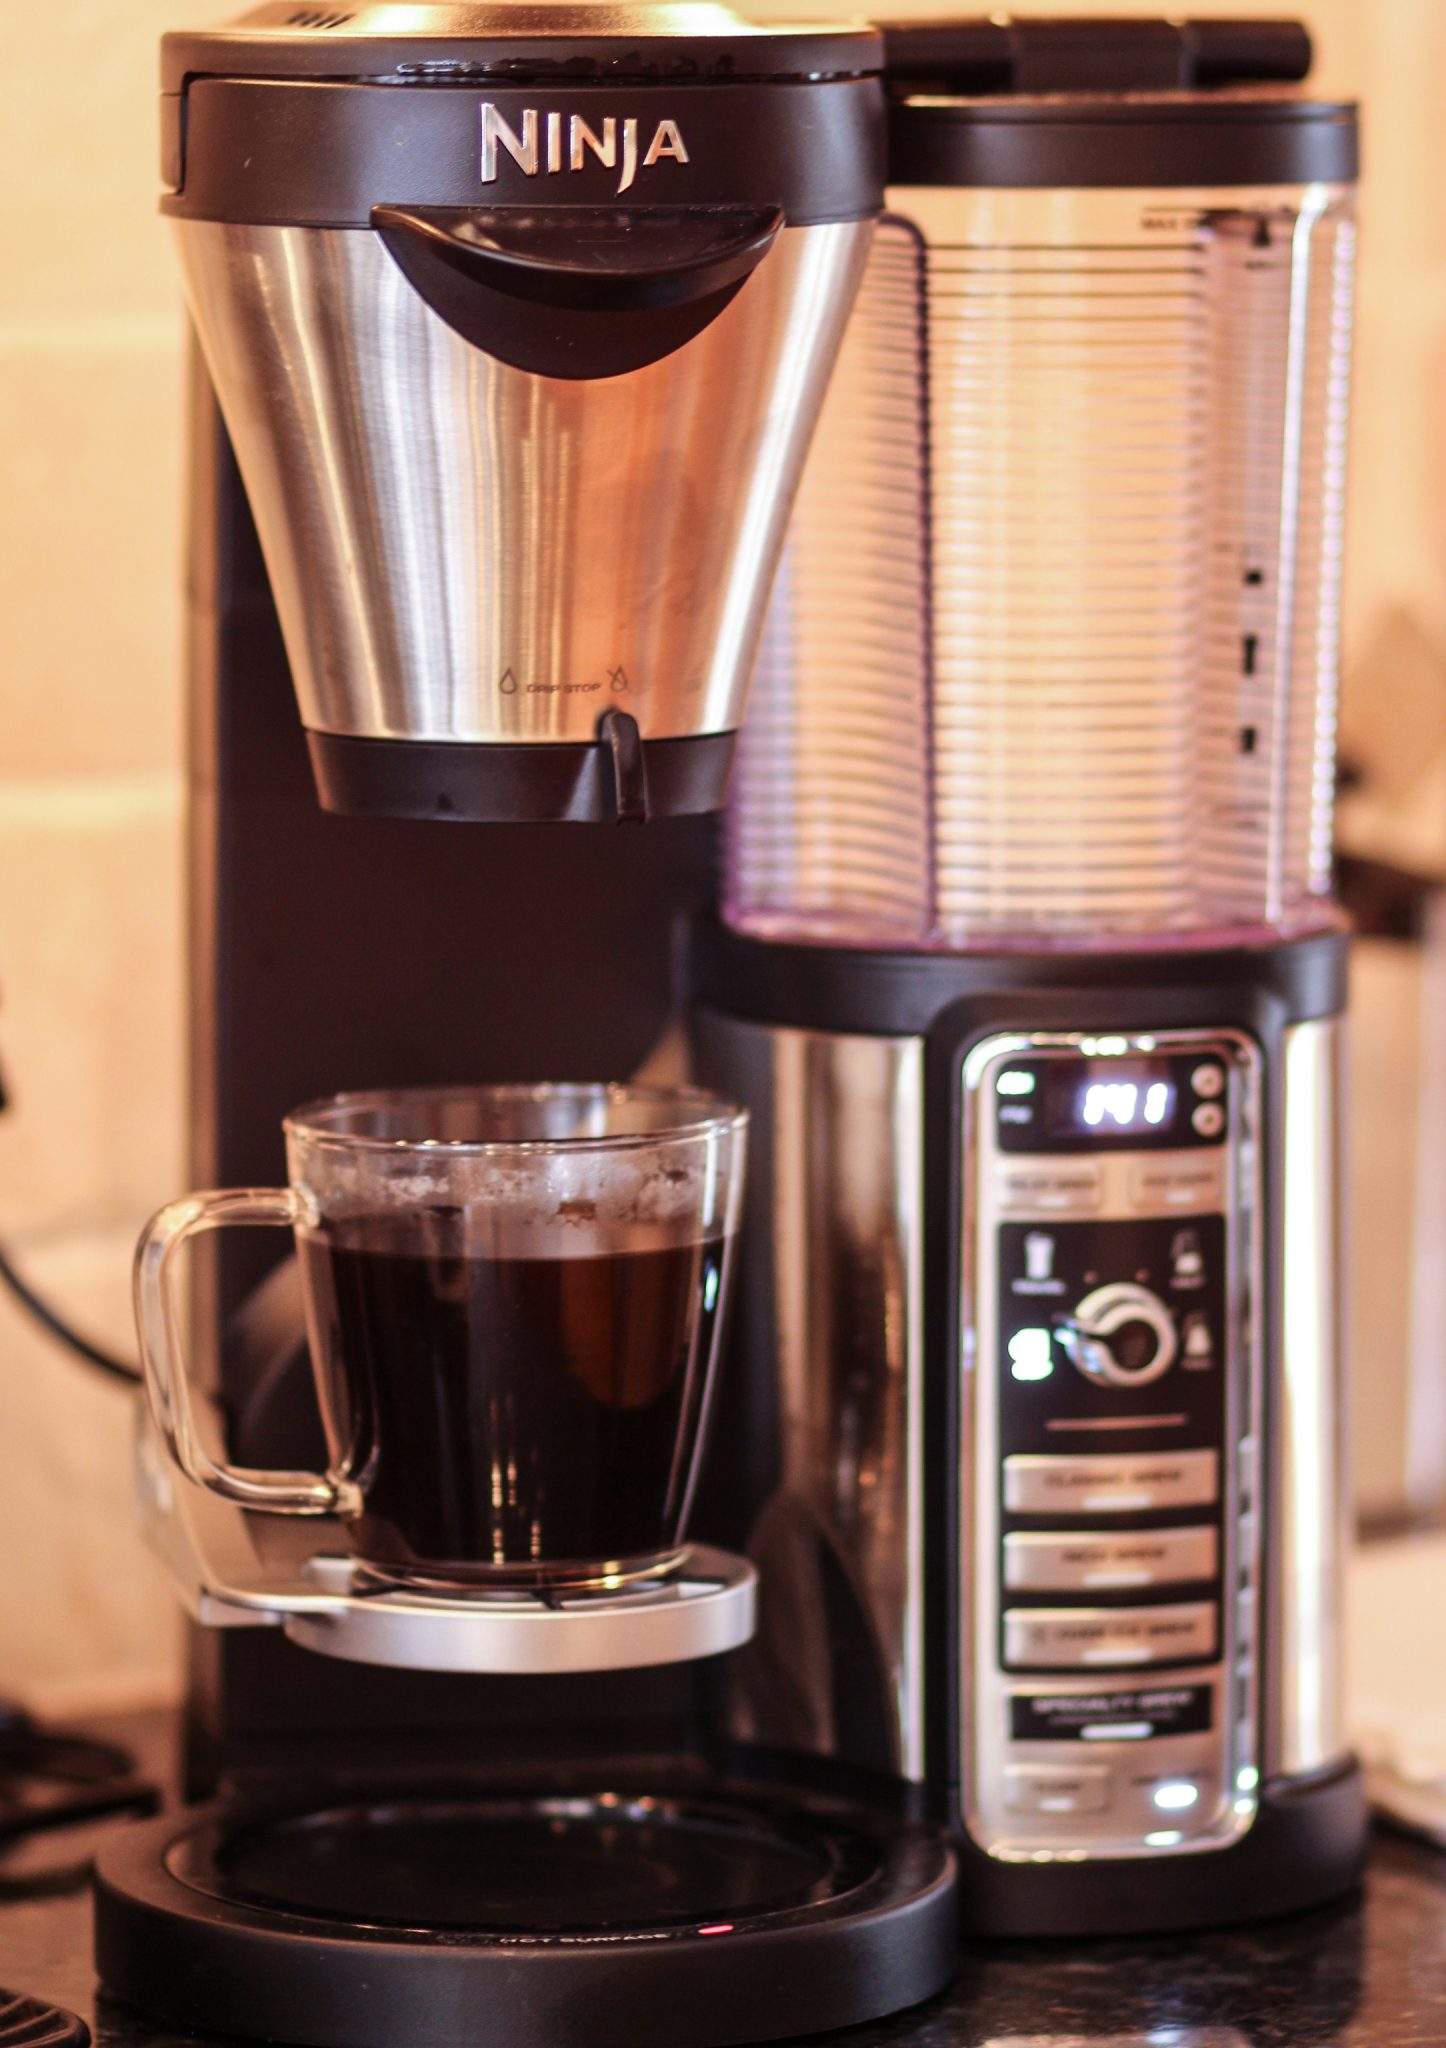 Ninja Coffee Maker Target : The Best Coffee Makers: Ninja Coffee Bar Brewer, Nespresso Citiz, and Technivorm Moccamaster ...